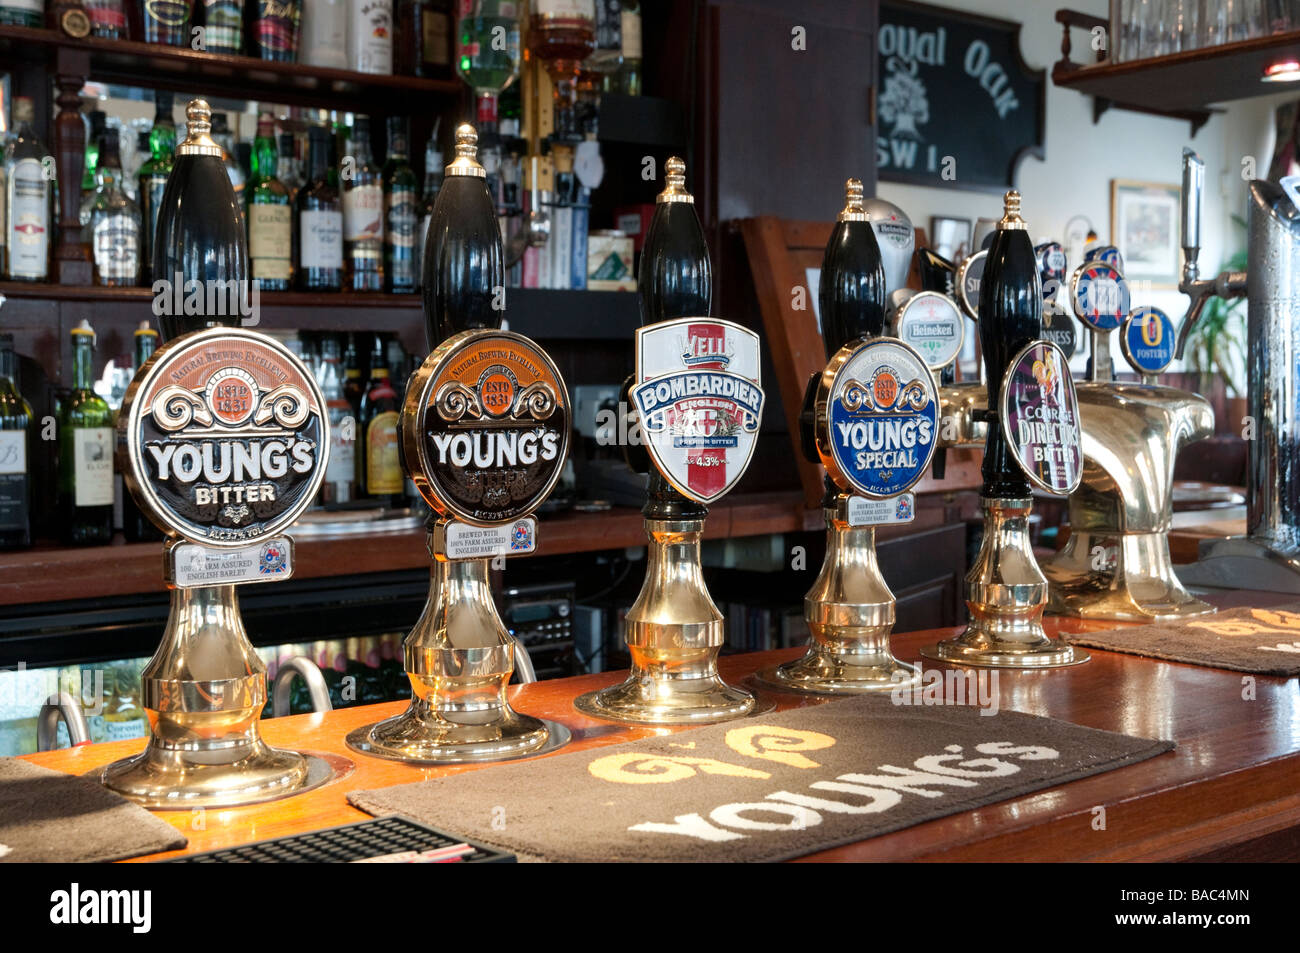 Row of traditional English bitter beer pumps in pub, London England UK - Stock Image